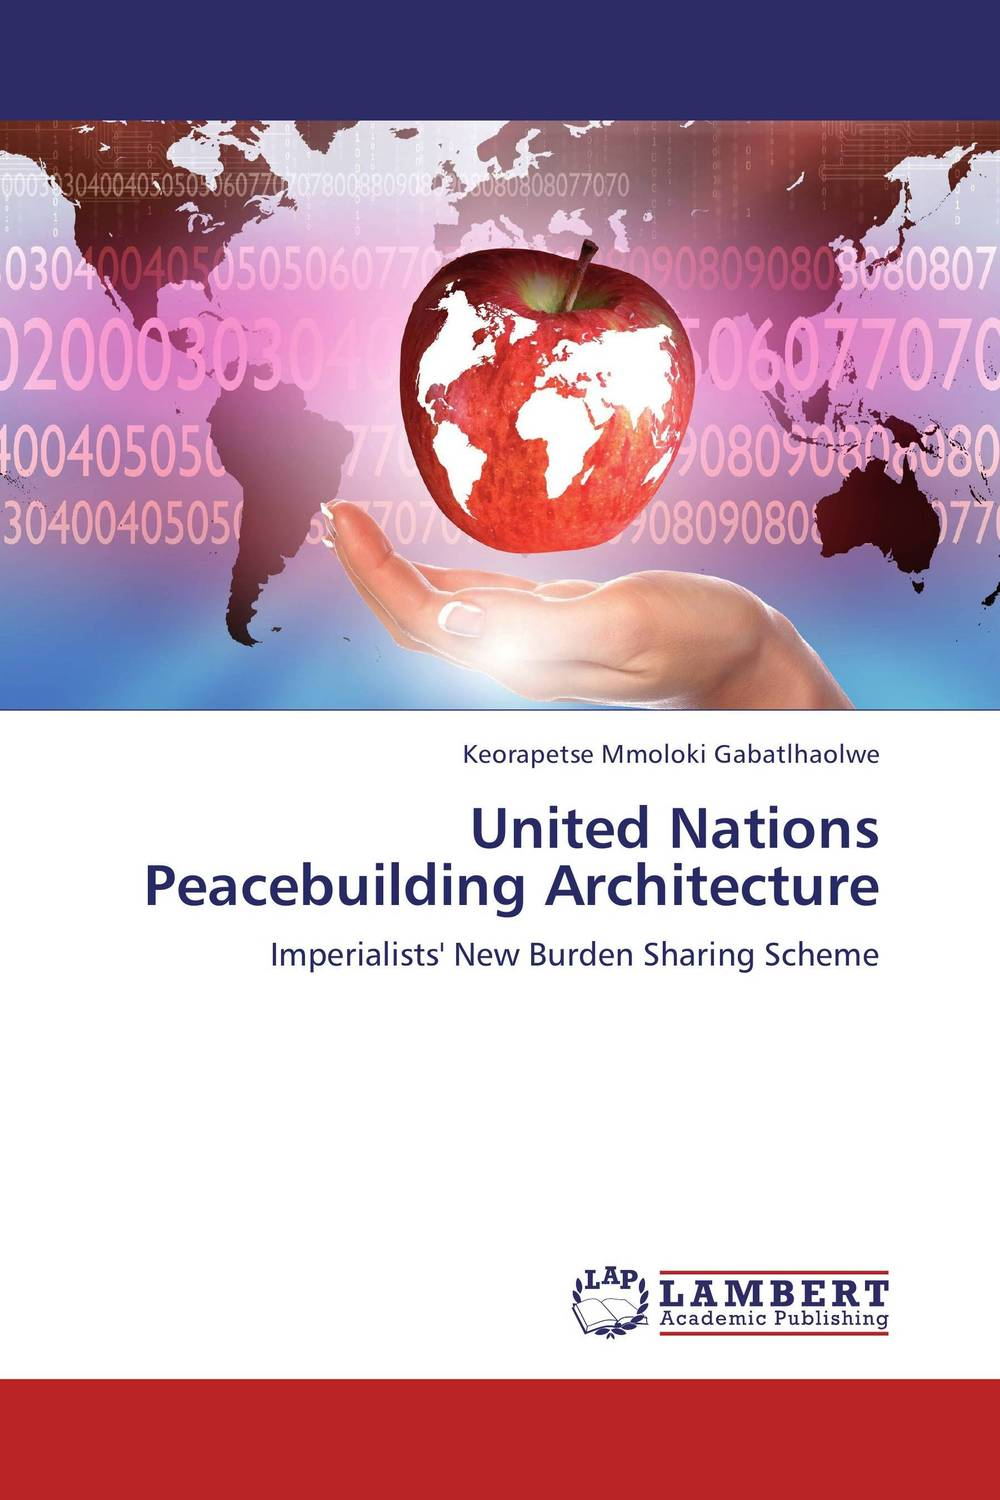 United Nations Peacebuilding Architecture godfrey sempungu sharing the burden